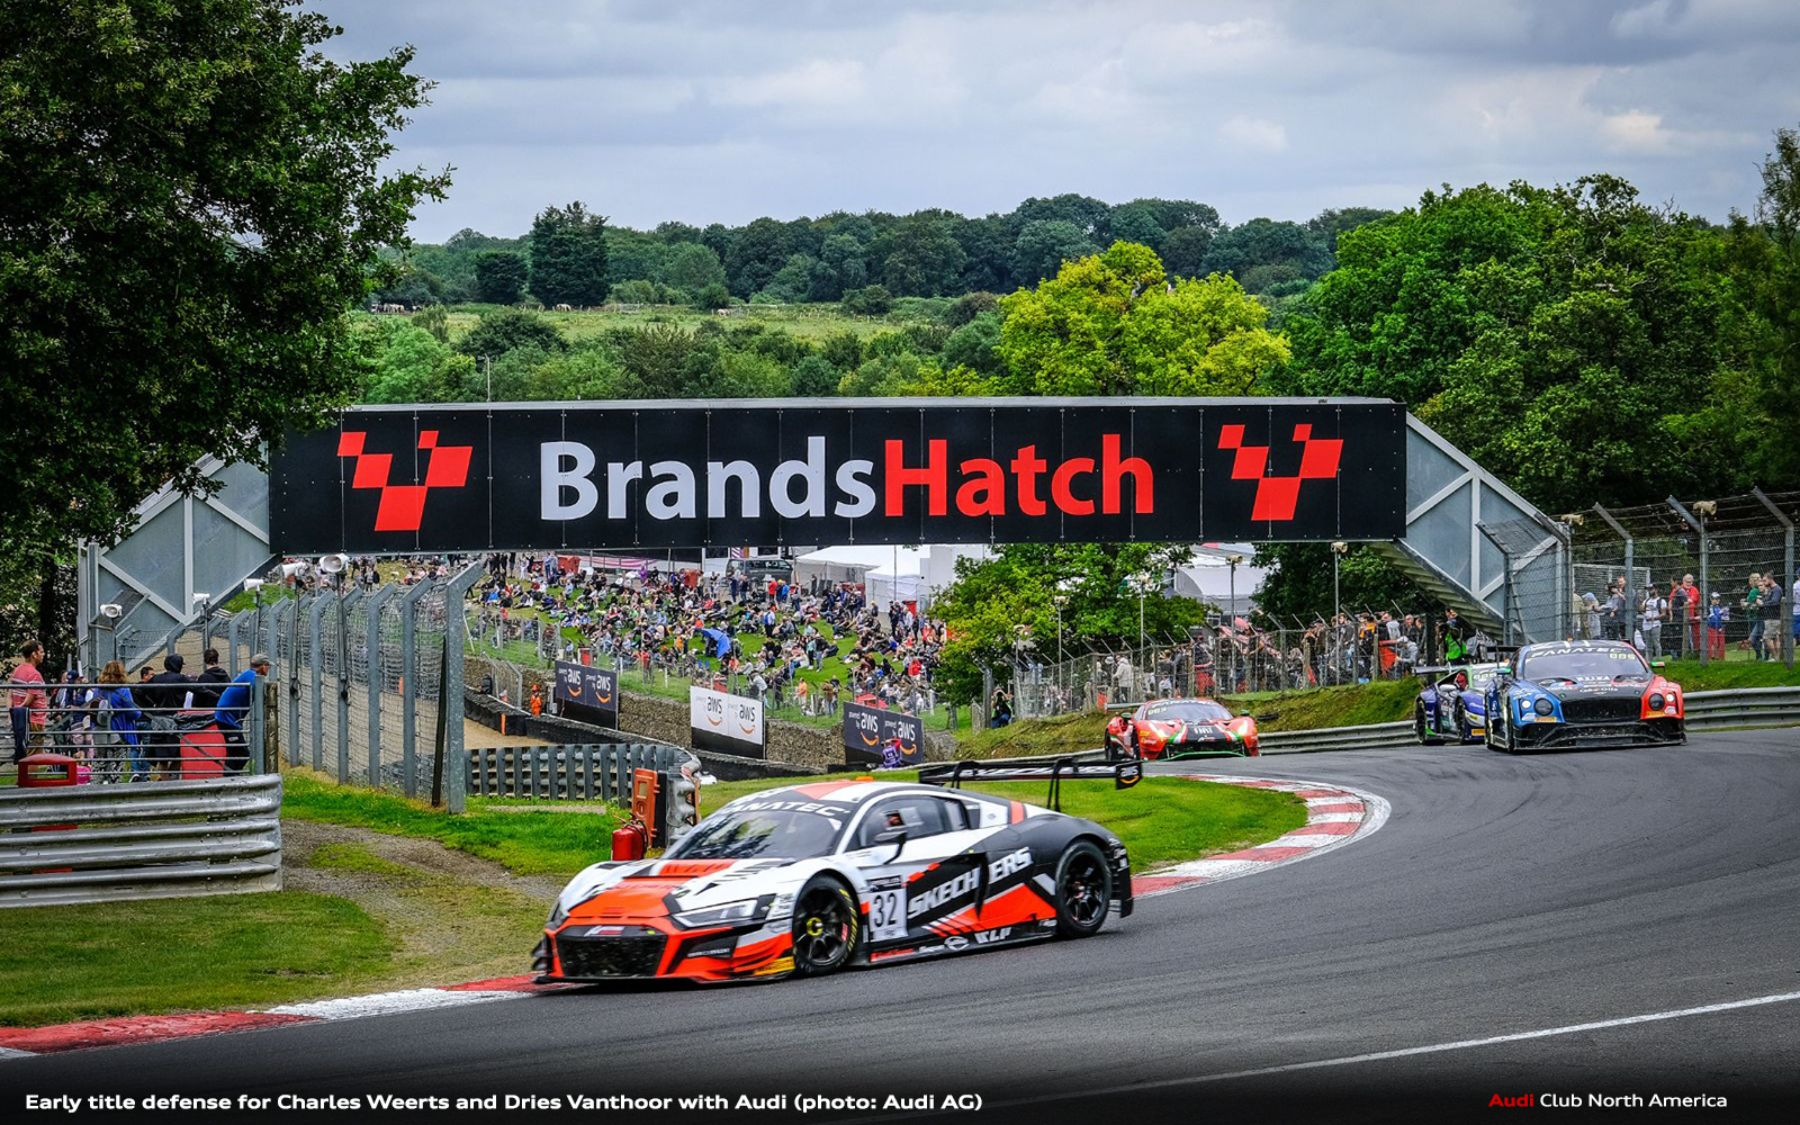 Early Title Defense for Charles Weerts and Dries Vanthoor with Audi